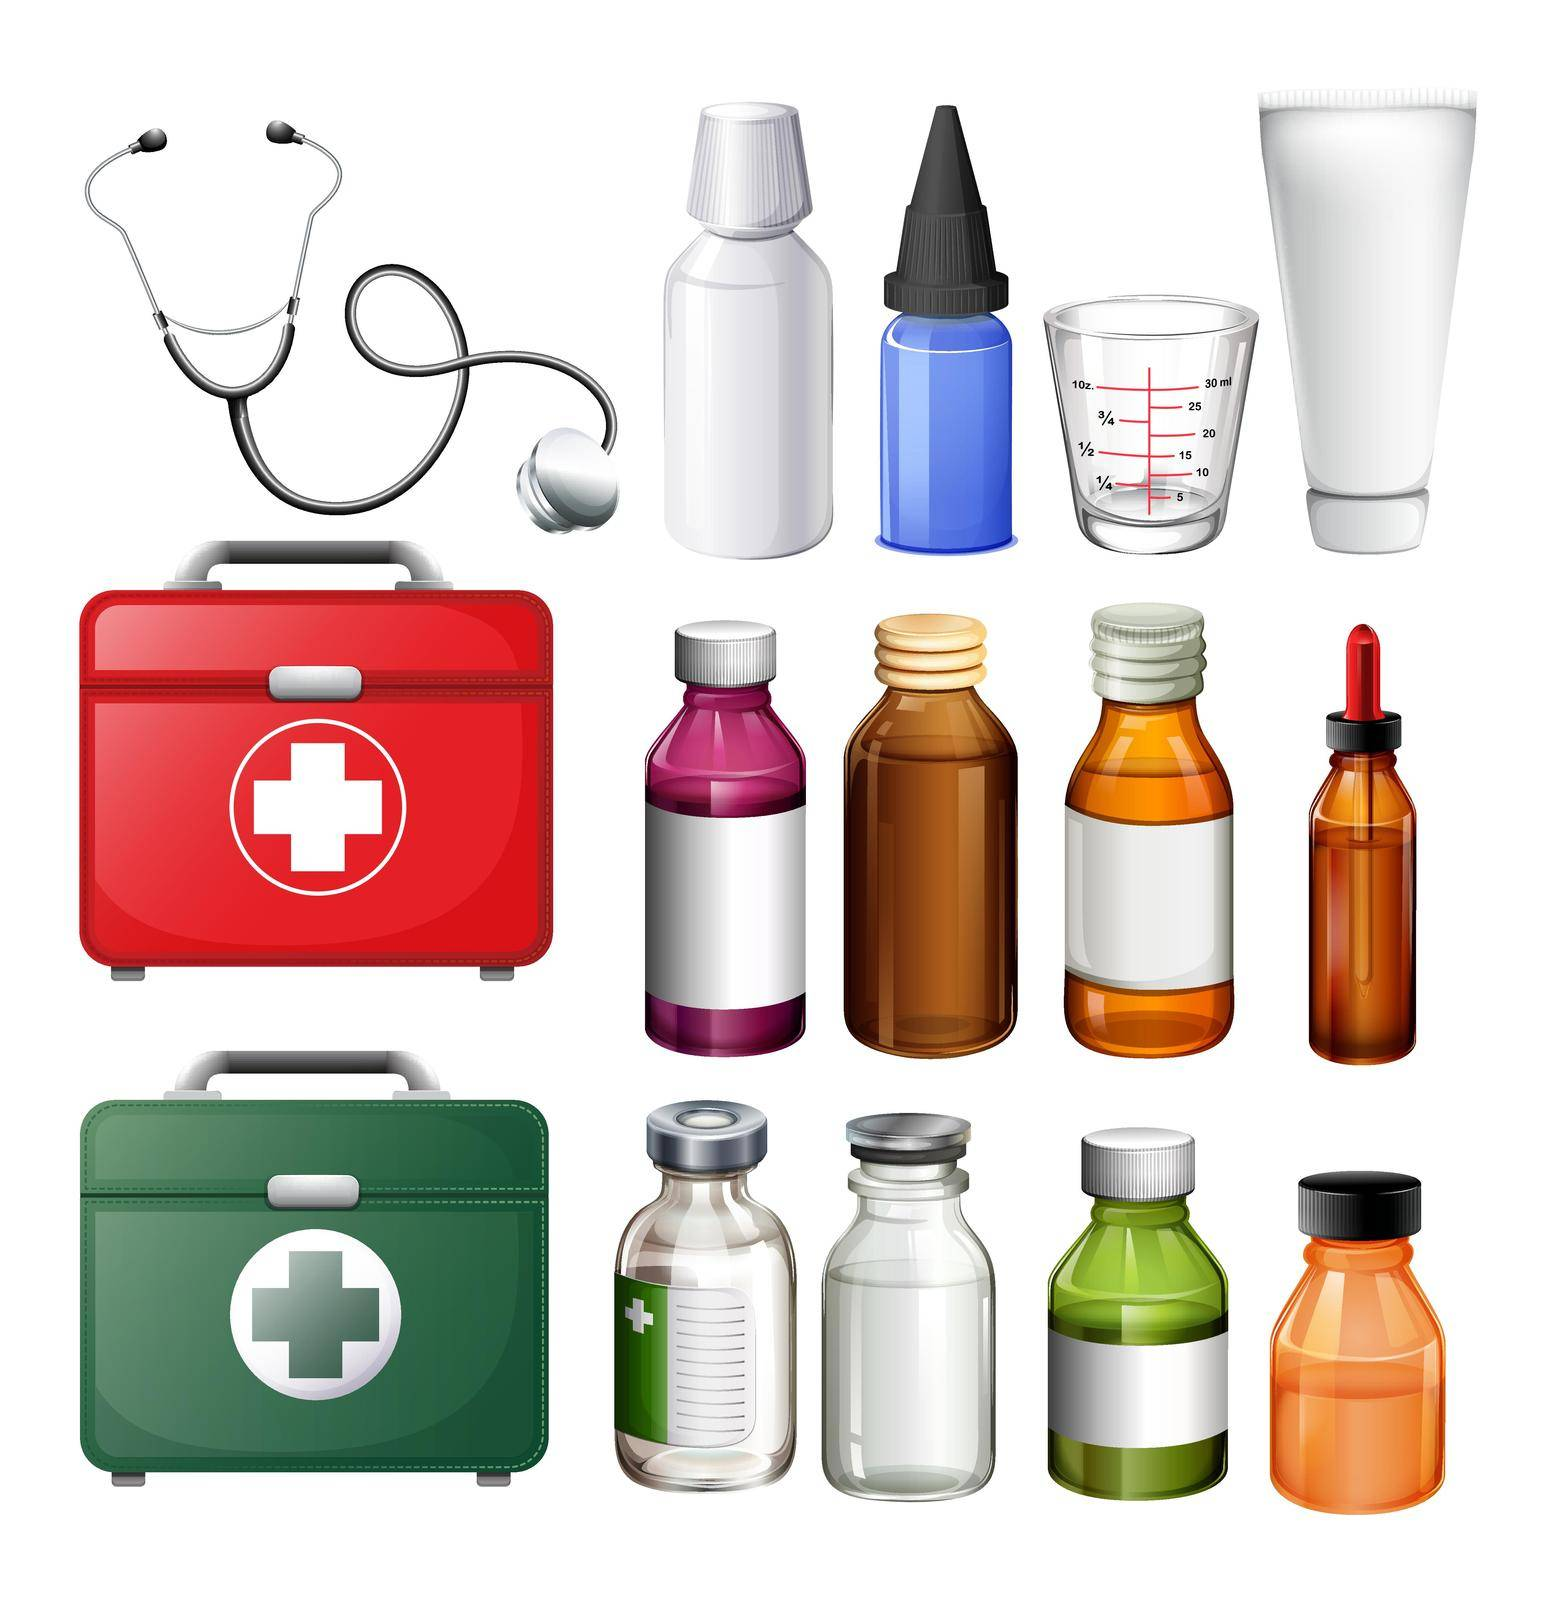 Medical equipment and containers by iimages